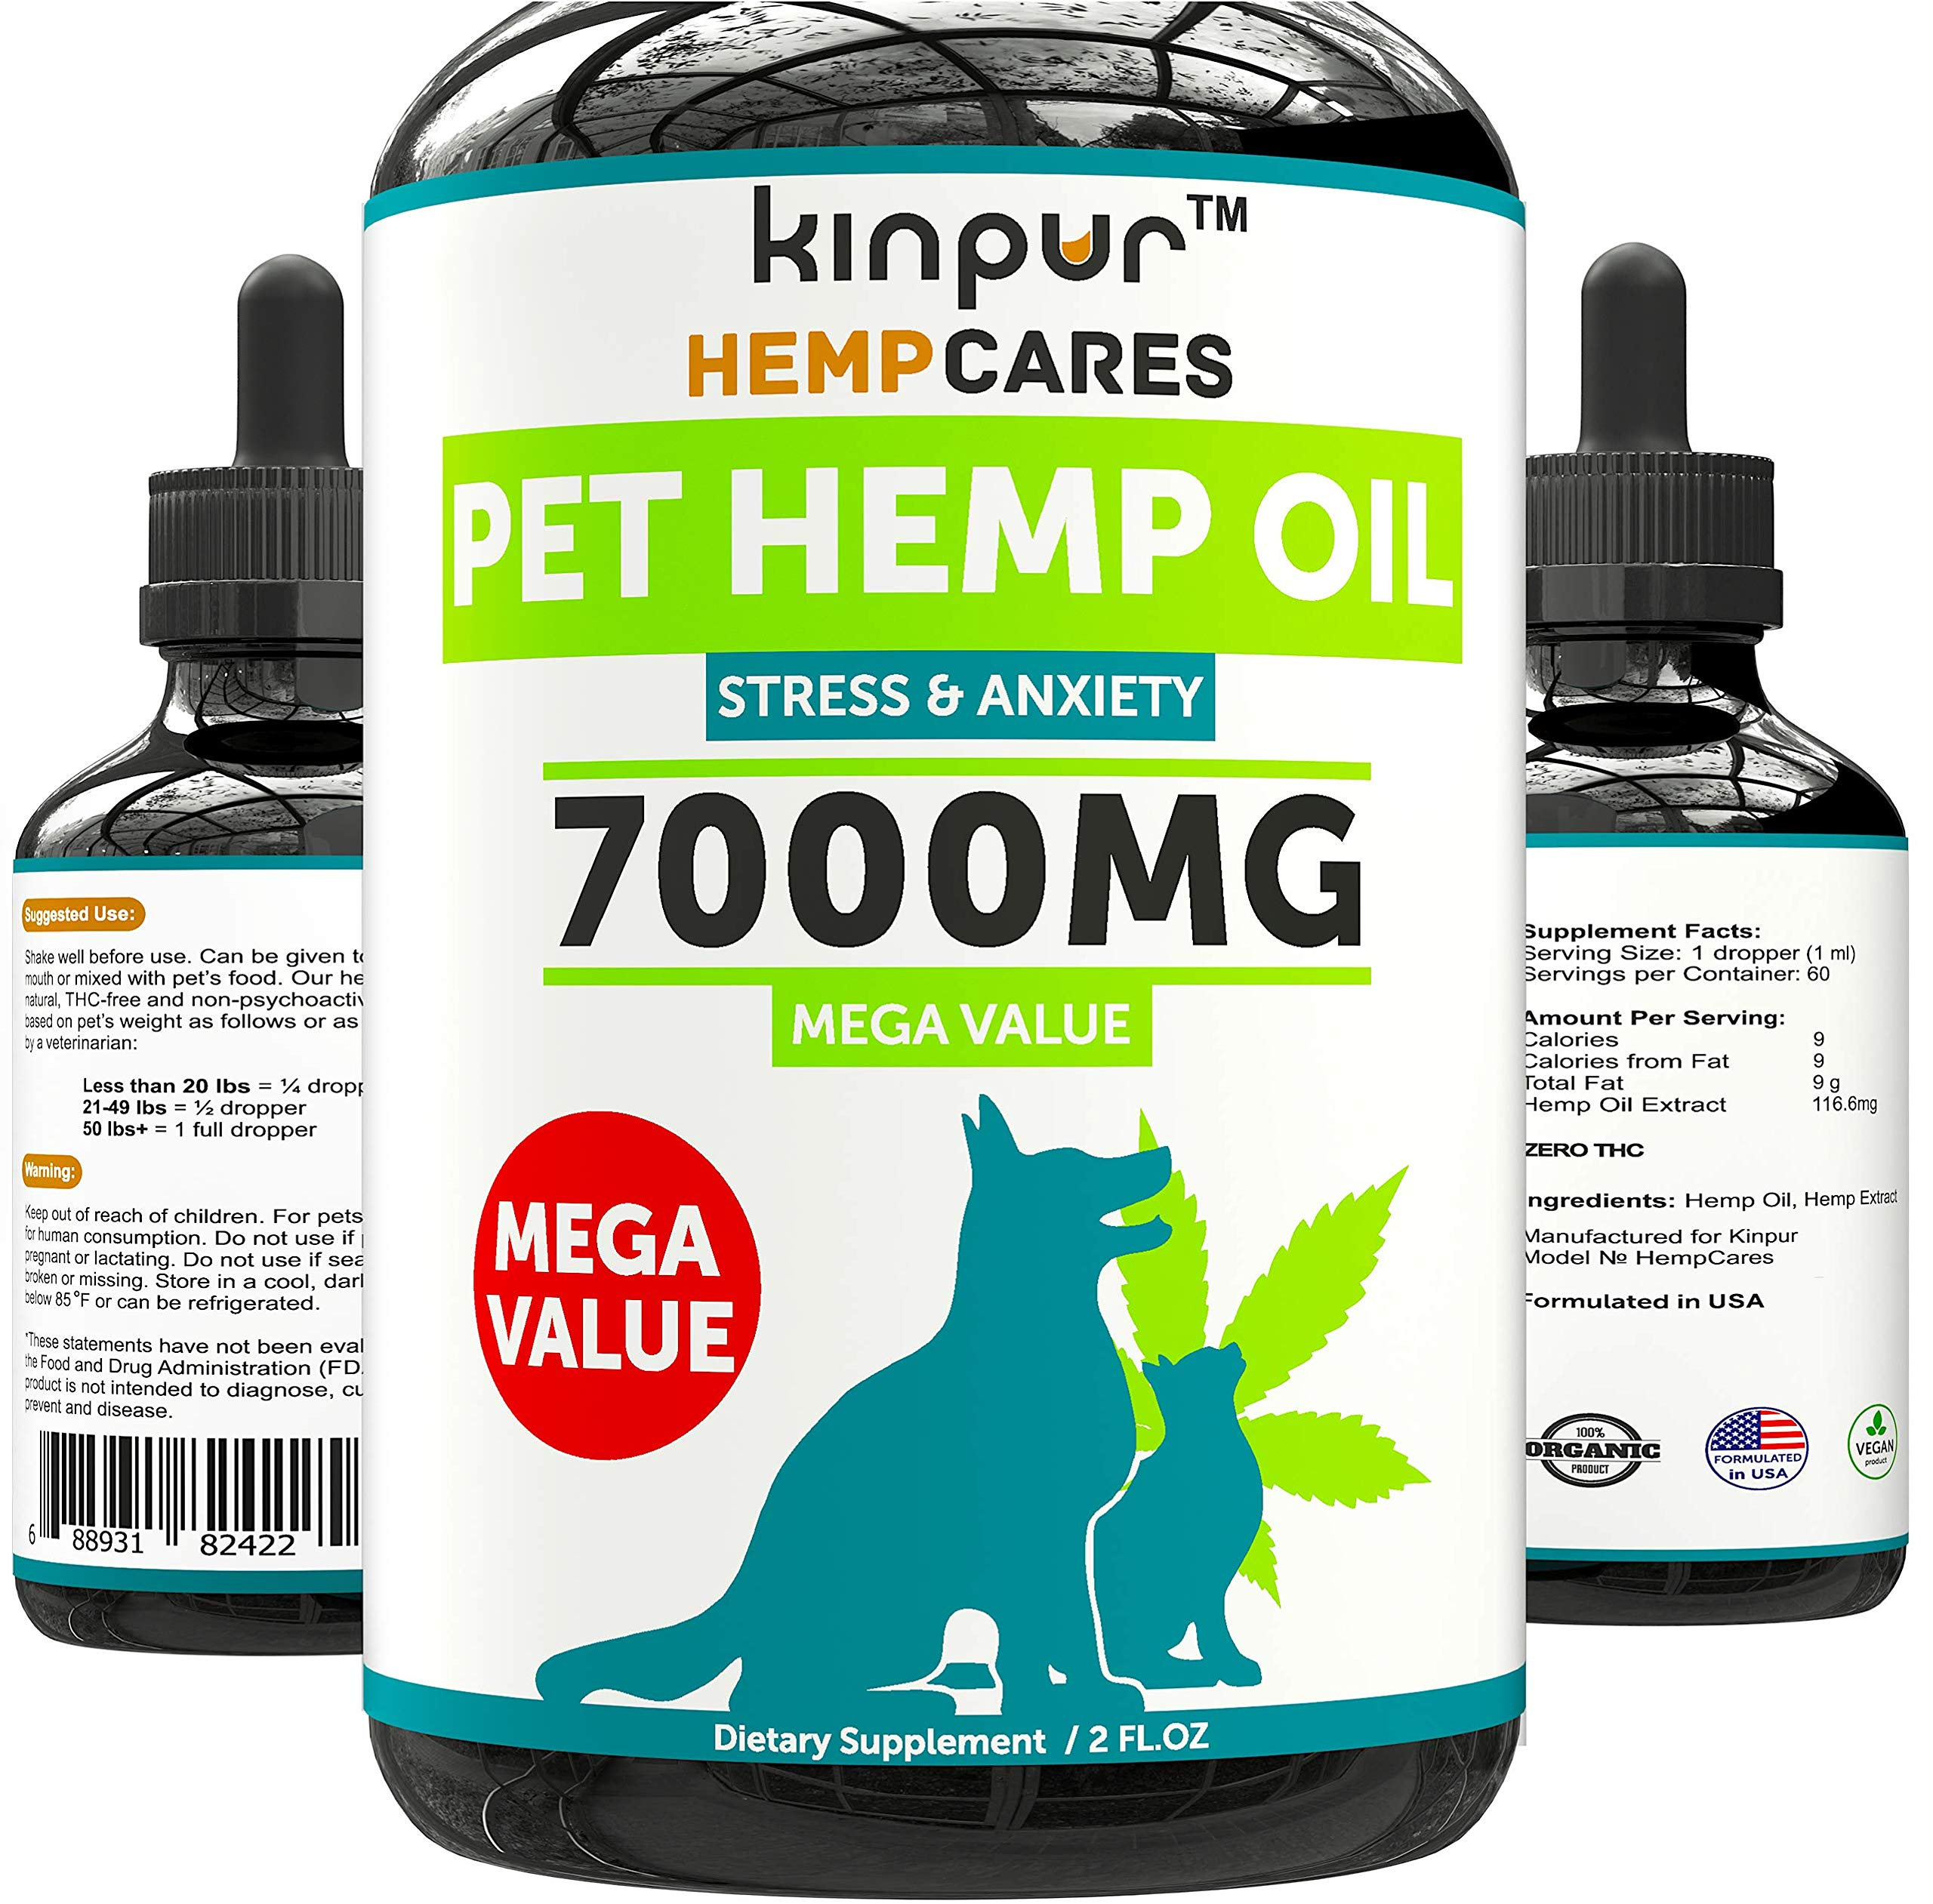 Hemp Oil for Dogs & Cats - 7000mg - Anxiety Relief for Dogs & Cats - Pet Hemp Oil - Supports Hip & Joint Health - Grown & Made in USA - Natural Relief for Pain - Omega 3, 6 & 9 by Kinpur